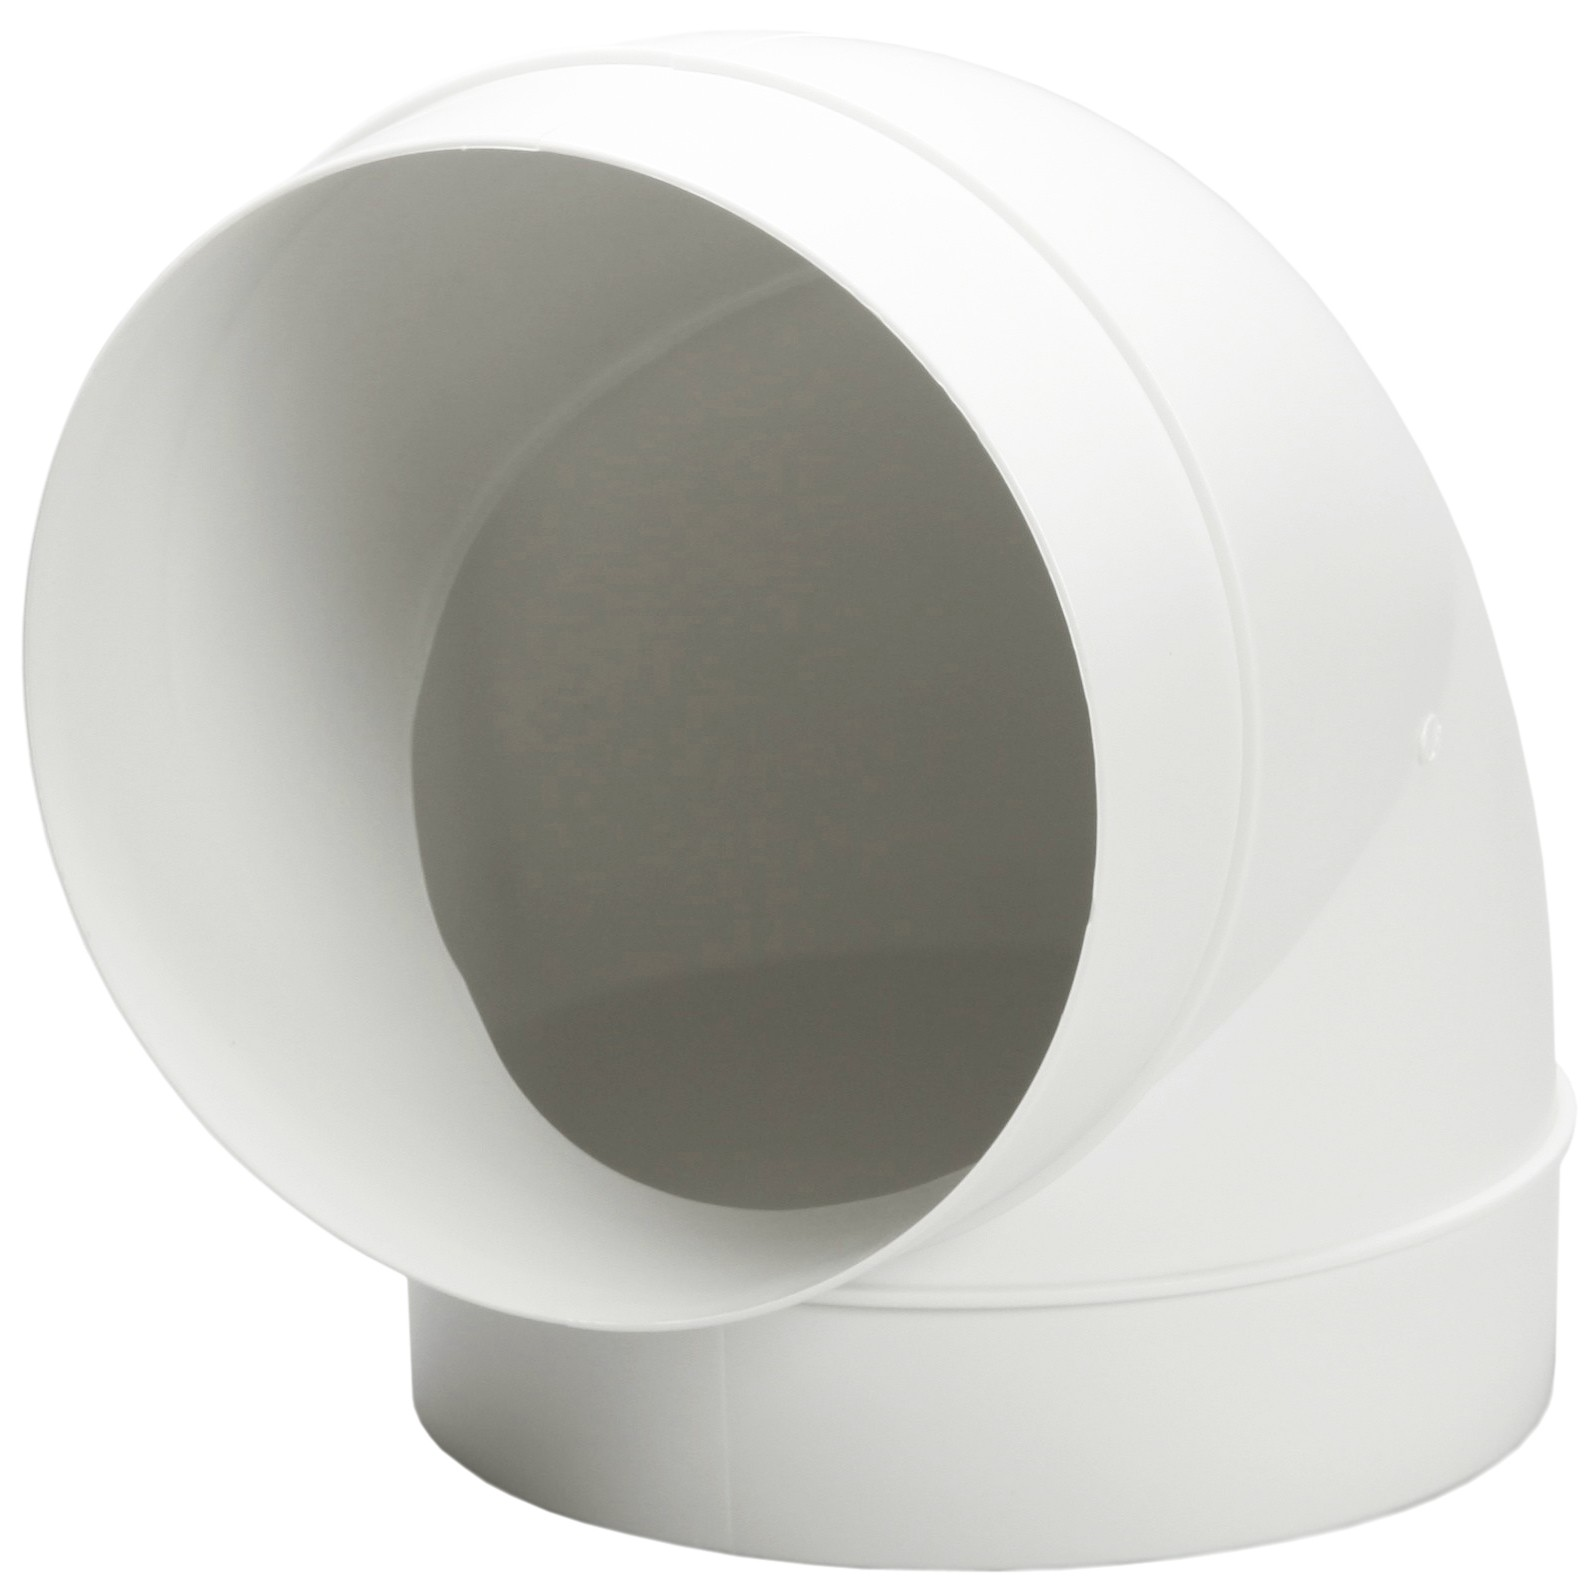 Manrose Round Ducting Pipe 90 Degree Bend - White, 100mm